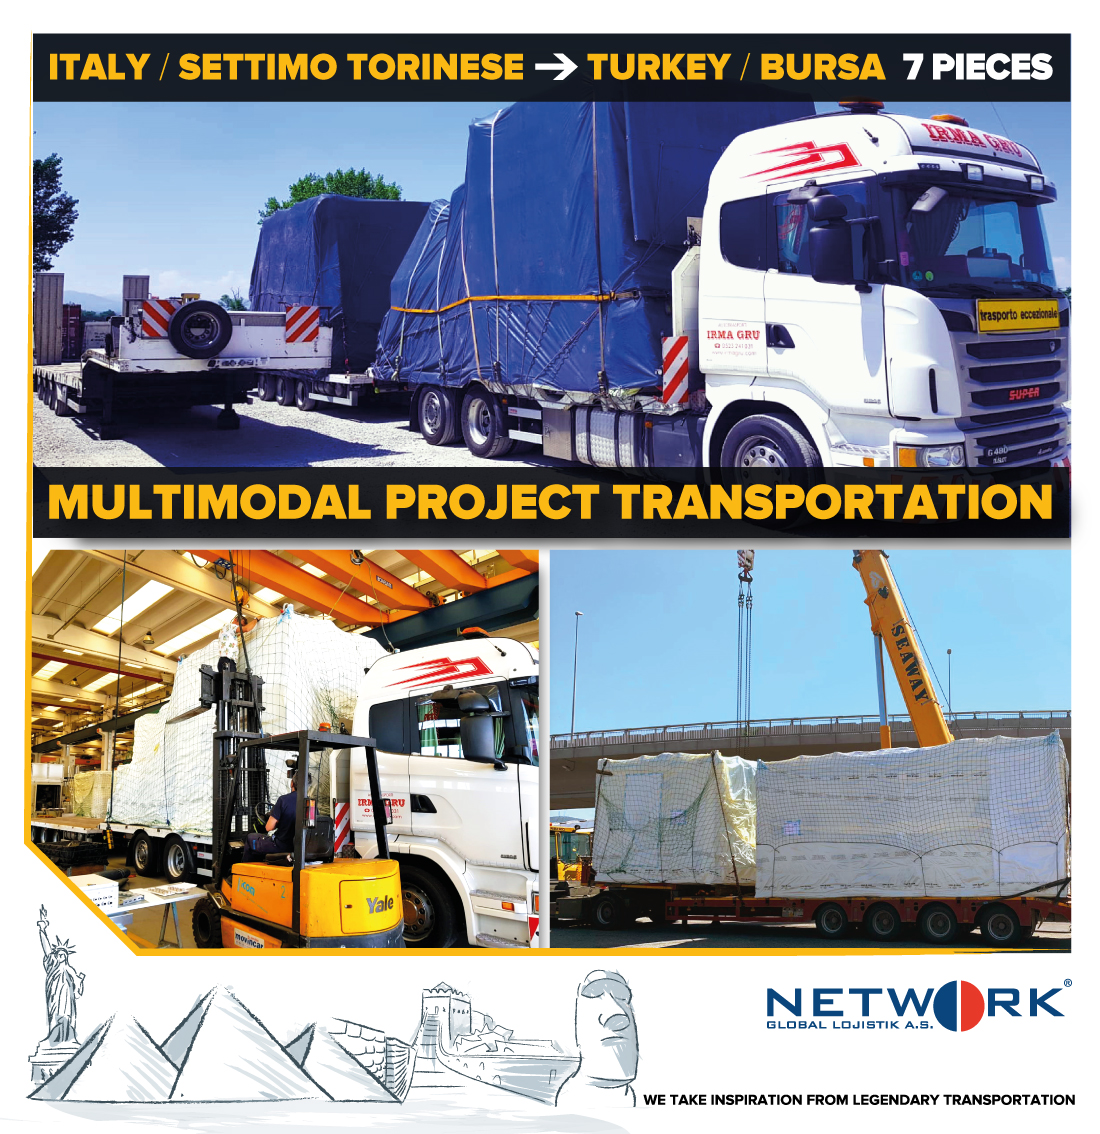 italy-turkey-networkgloballogistics